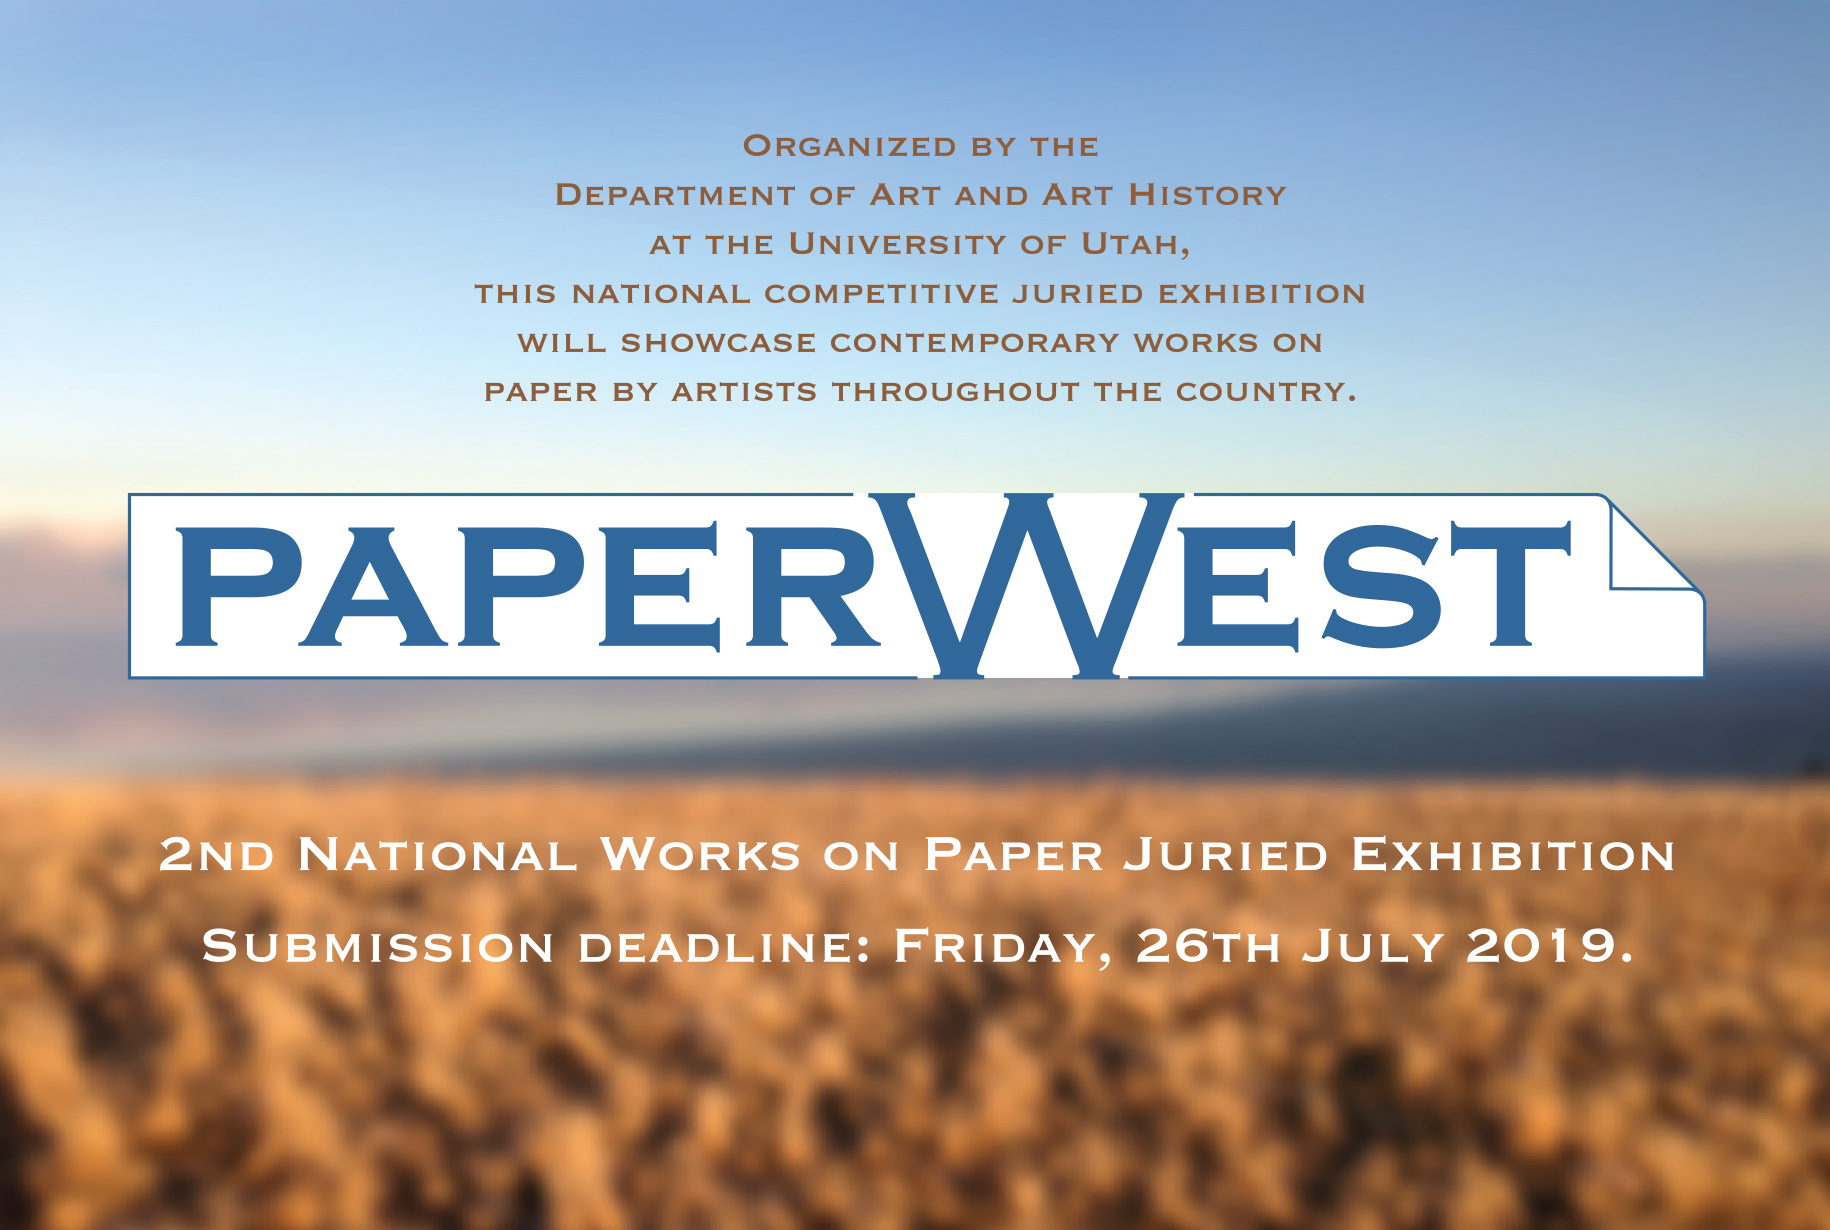 PaperWest 2019 call for entries